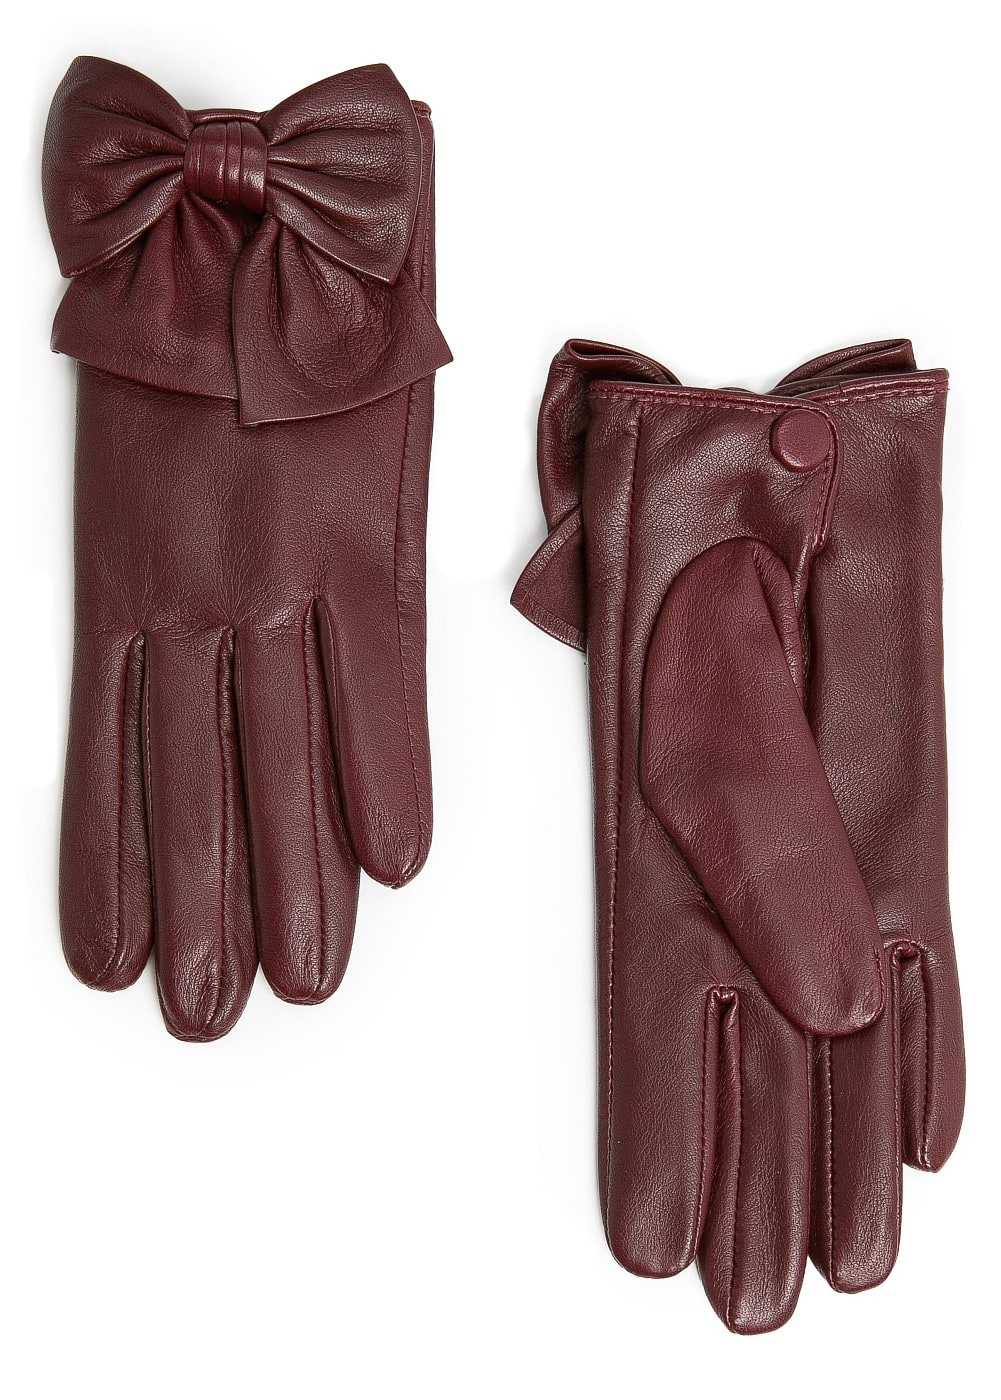 Bowknot leather gloves